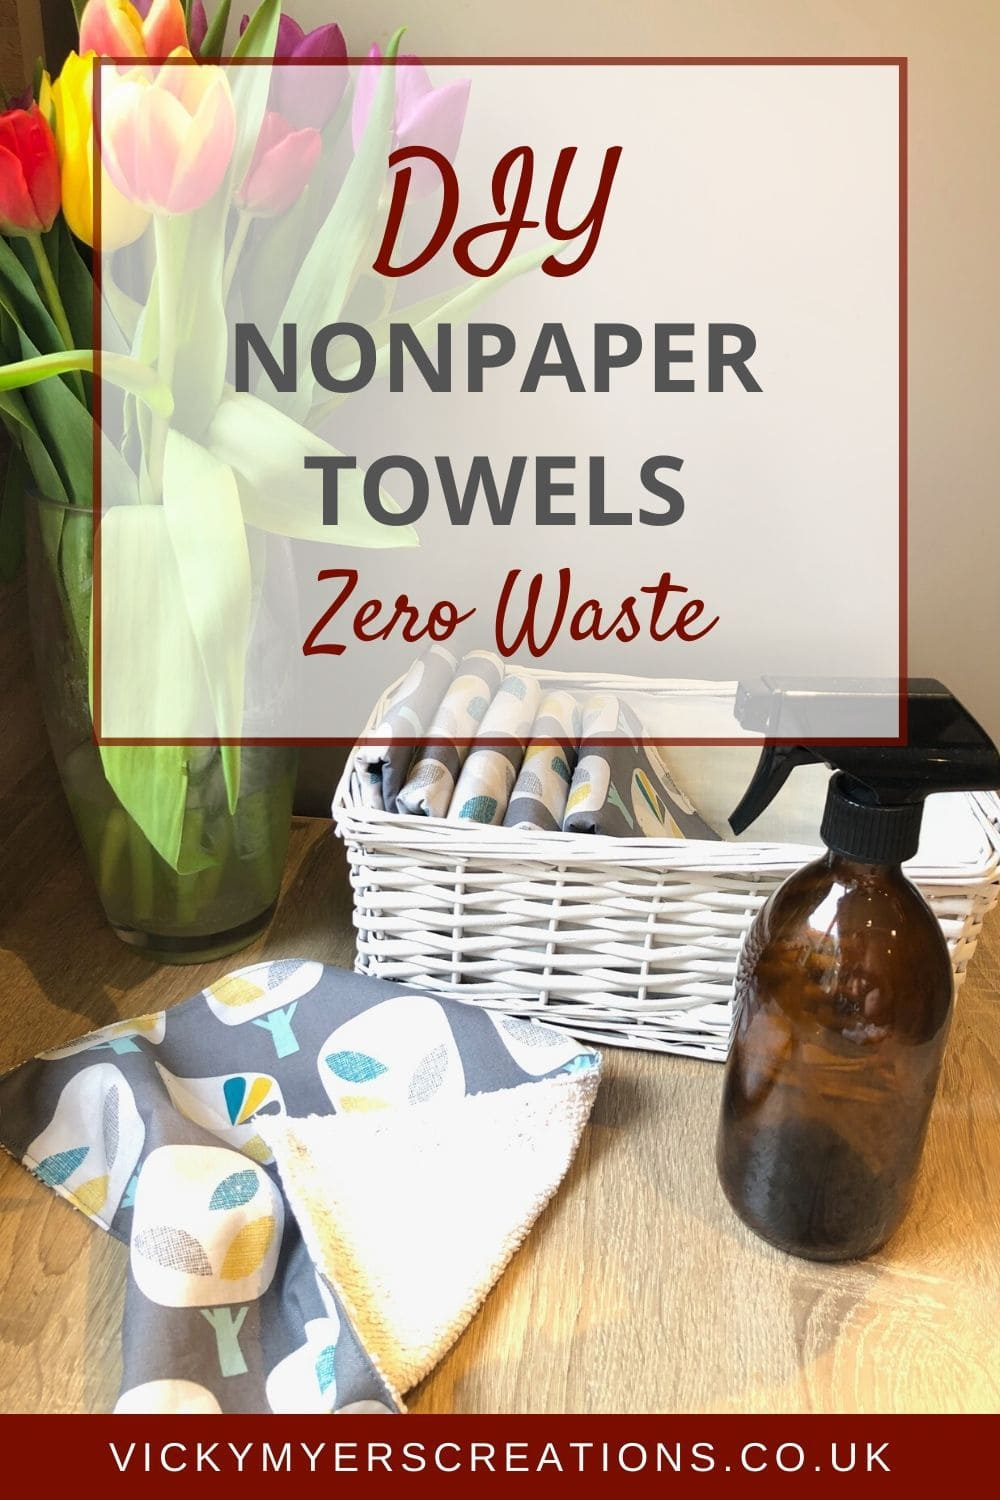 This DIY for unpaper towels involves no snap's - grab a reusable kitchen towel from a basket and you are good to go, quick and easy. Unpaper towels are an easy eco swap, ditch the single use reusable paper towels, and make yourself some lovely reusable fabric ones.